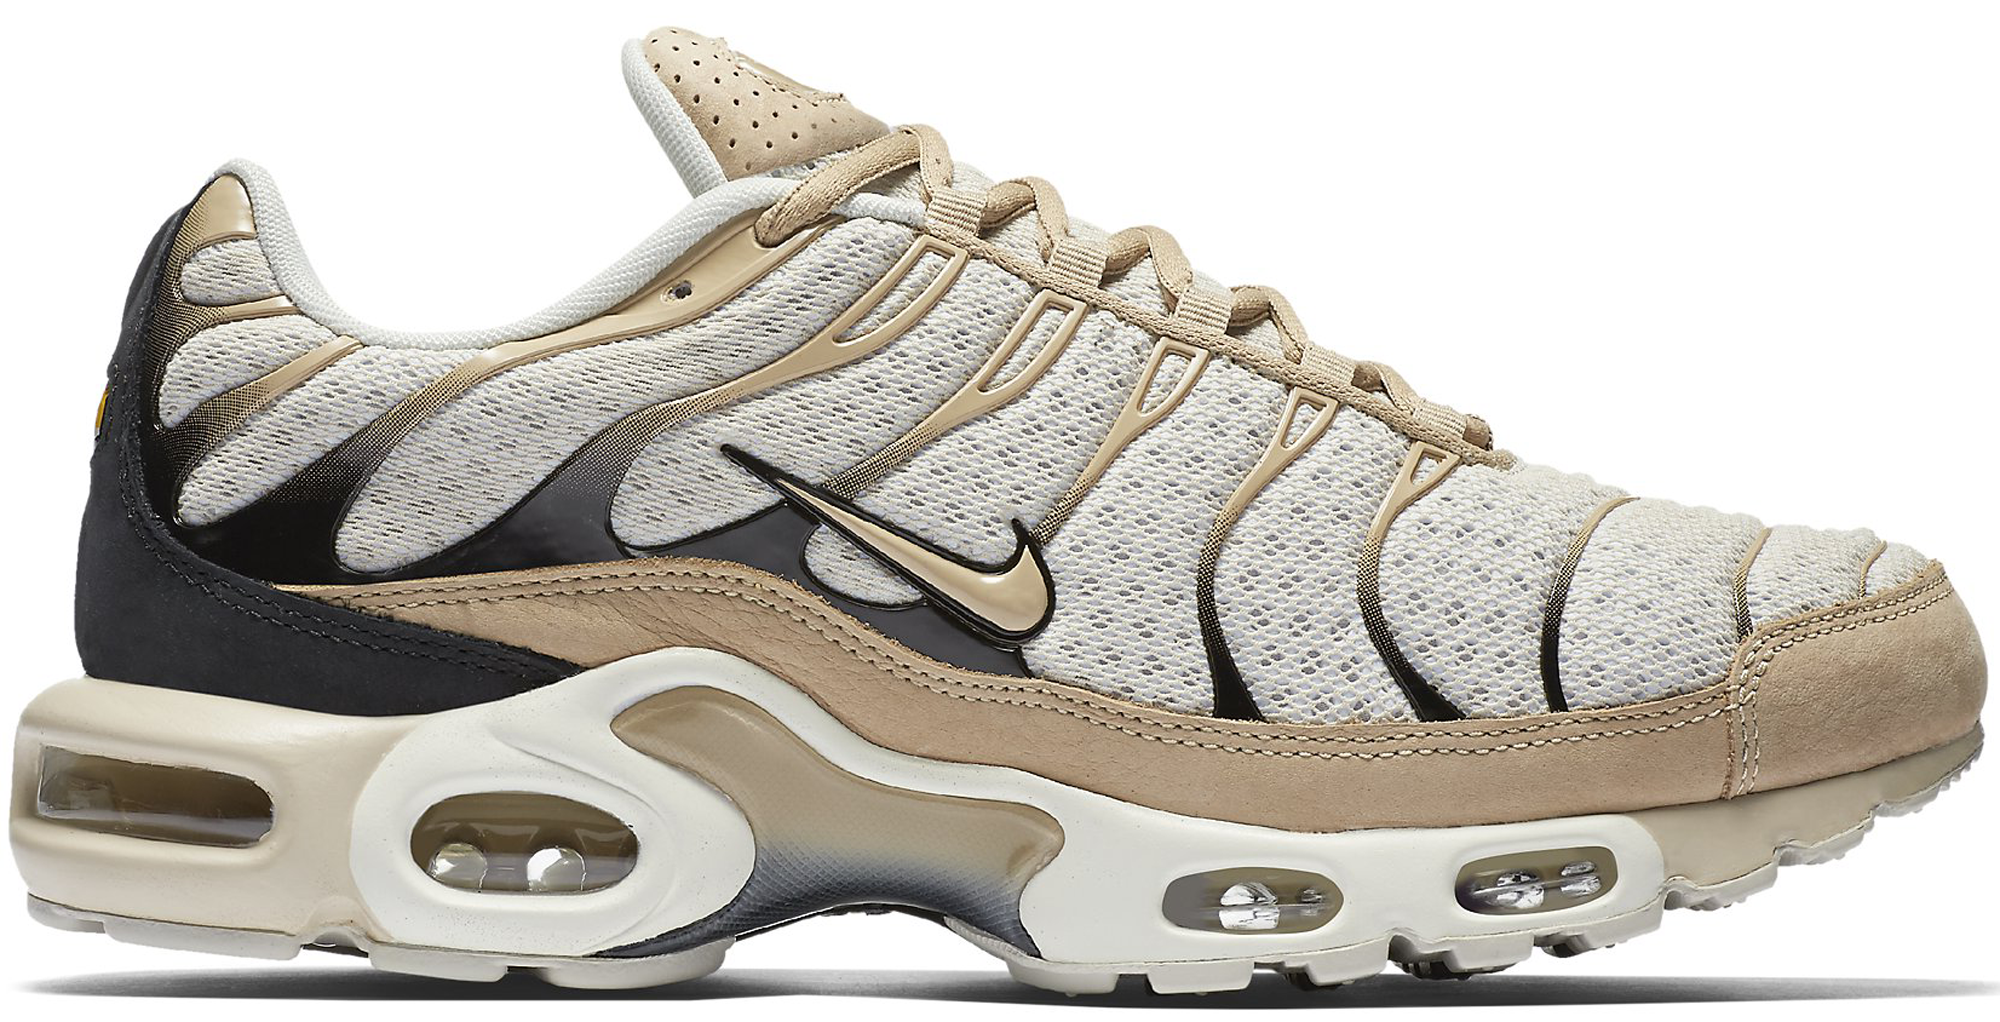 nike air max tn mens A Plus Holidays Musslan Restaurang och Bar